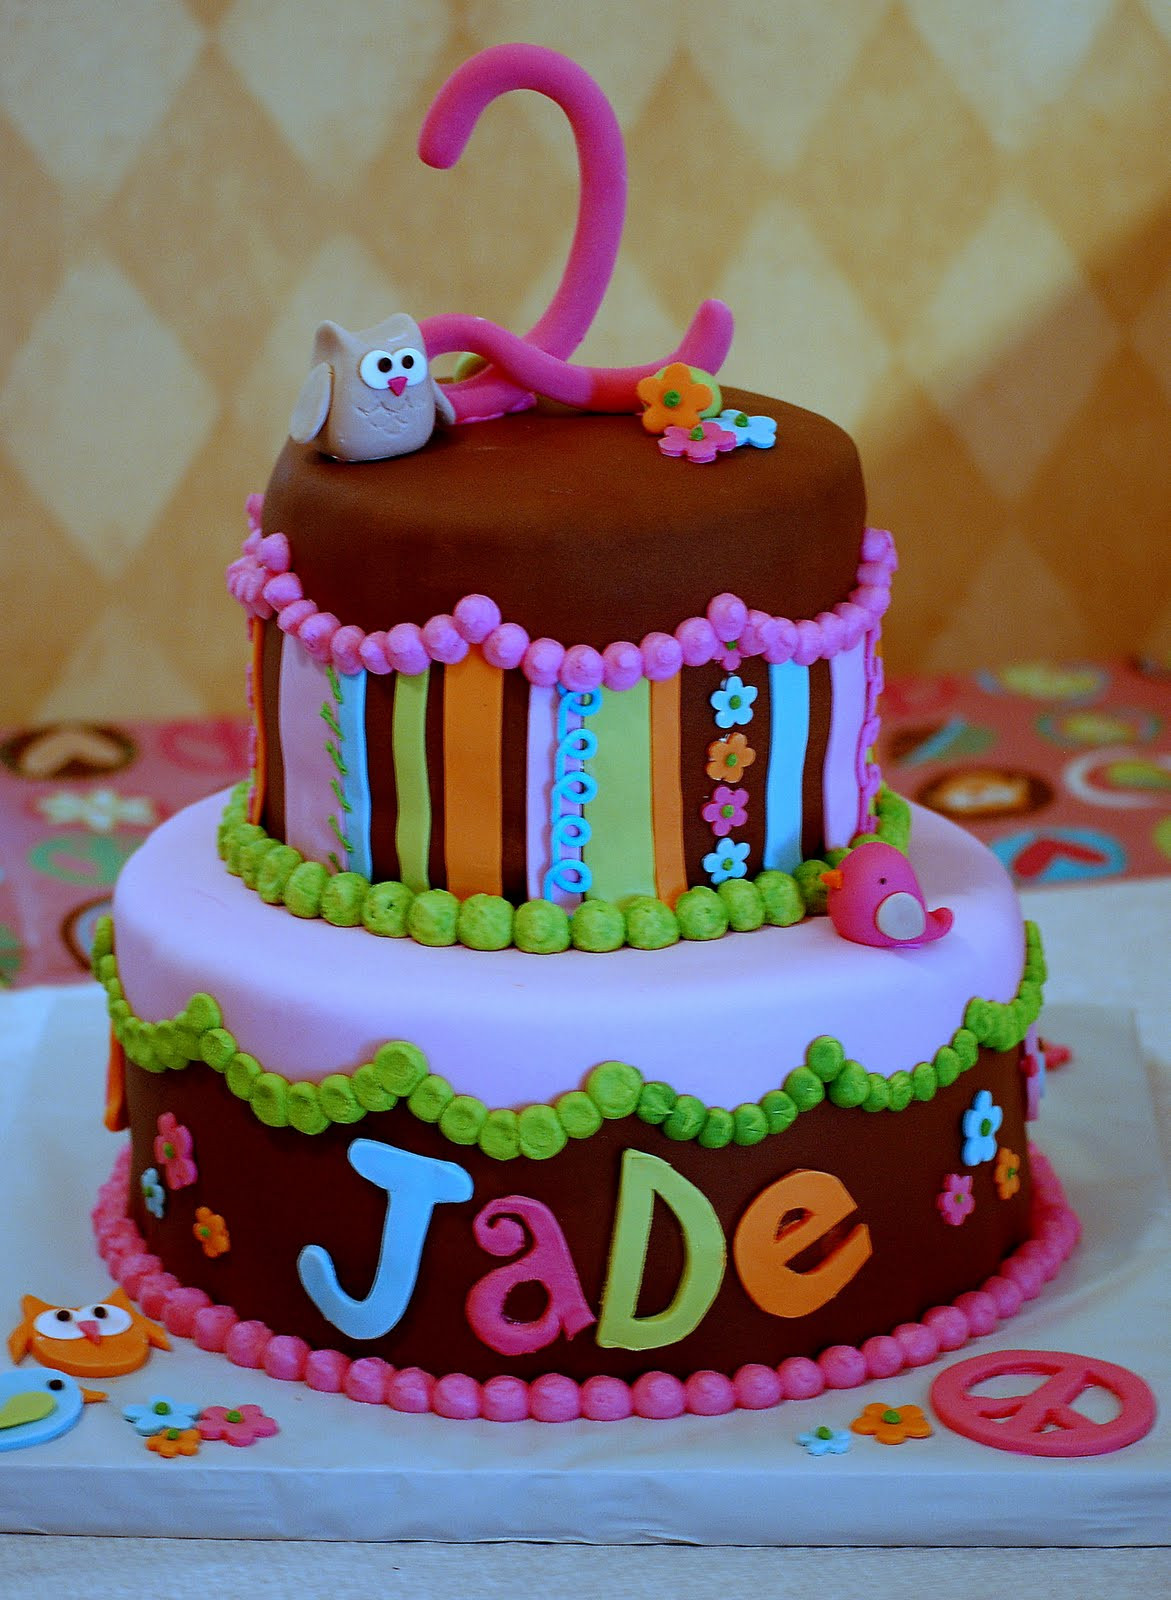 Best ideas about 2nd Birthday Cake . Save or Pin CakeFilley Groovy 2nd Birthday Cake Now.